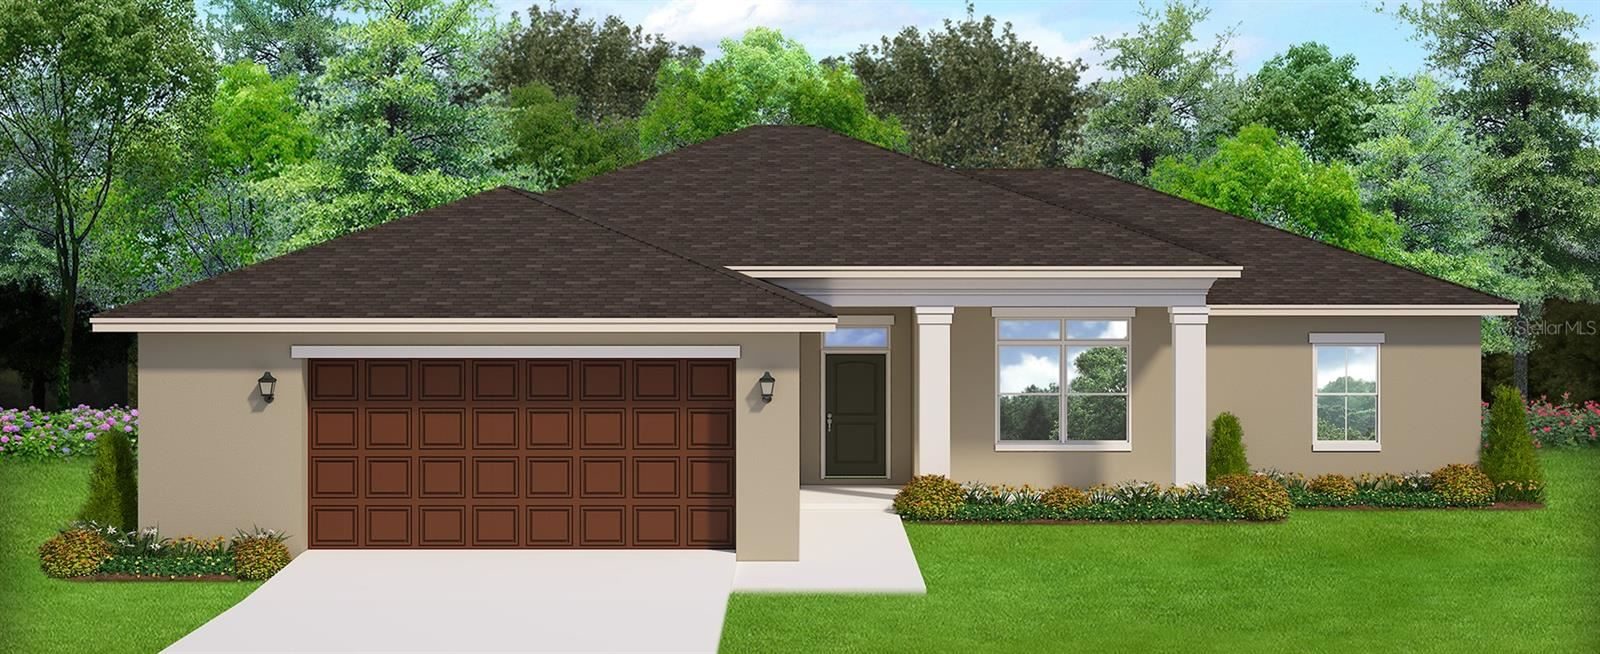 Photo of 15659 RUSTON CIRCLE, PORT CHARLOTTE, FL 33981 (MLS # T3273720)